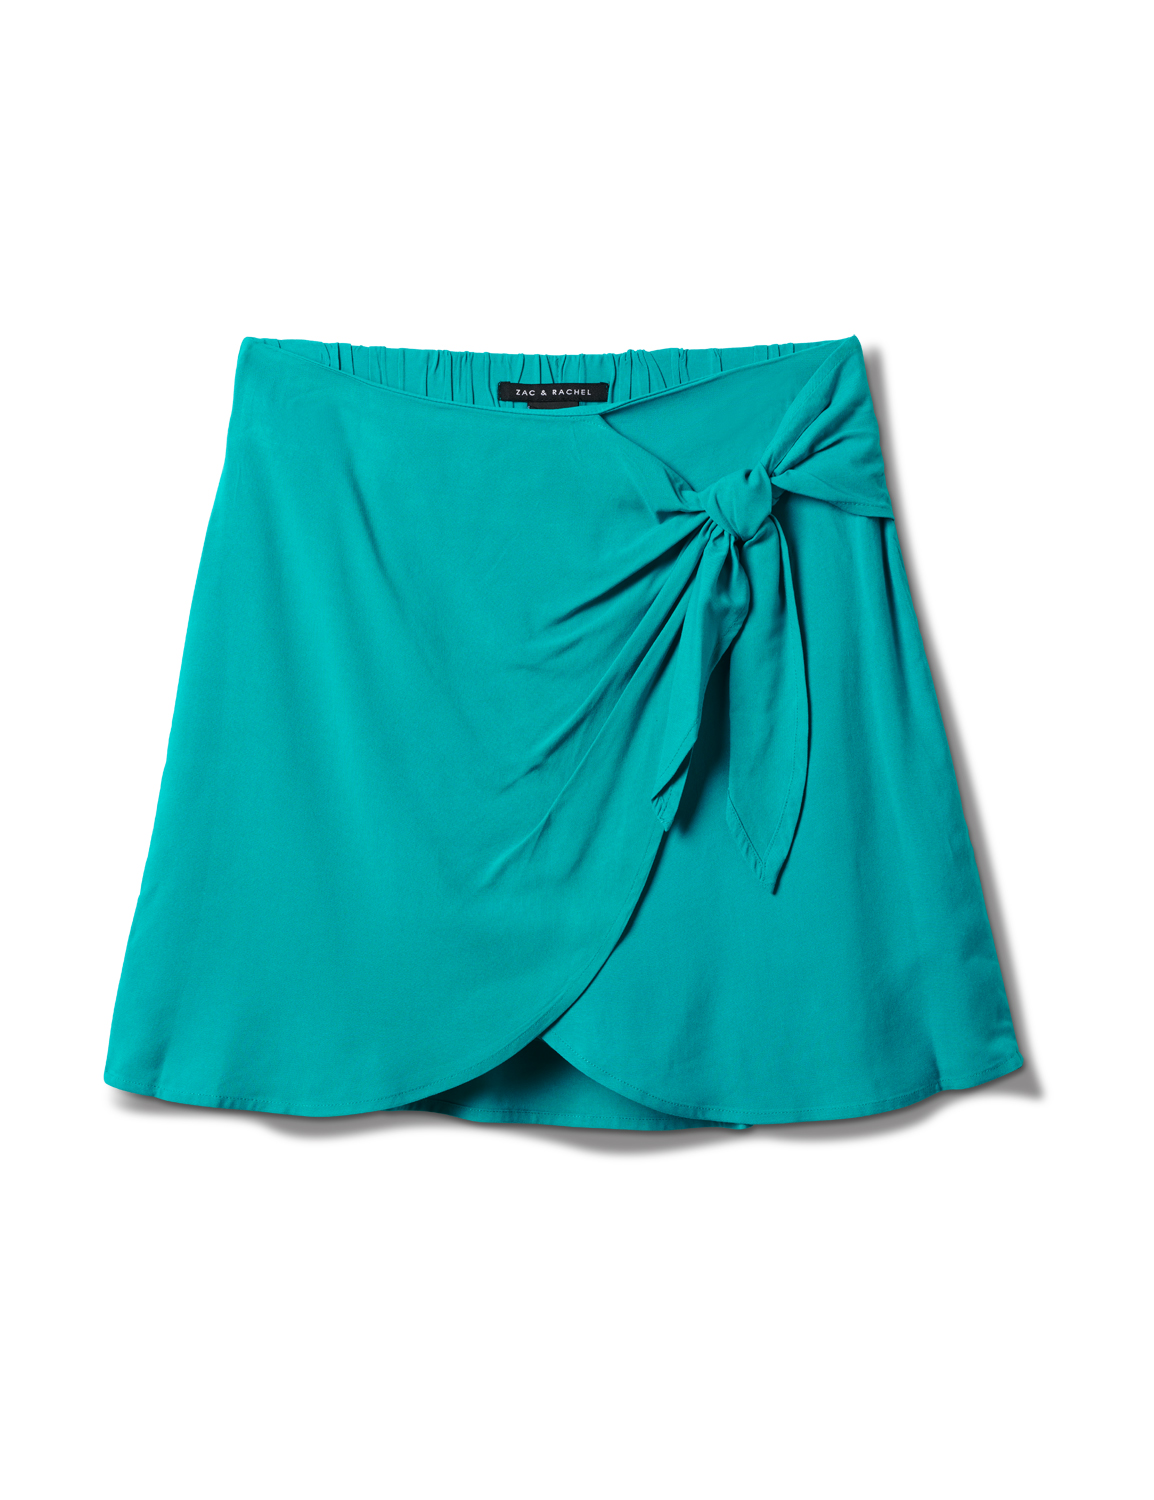 Pull On Skort with Back Elastic - Teal - Front